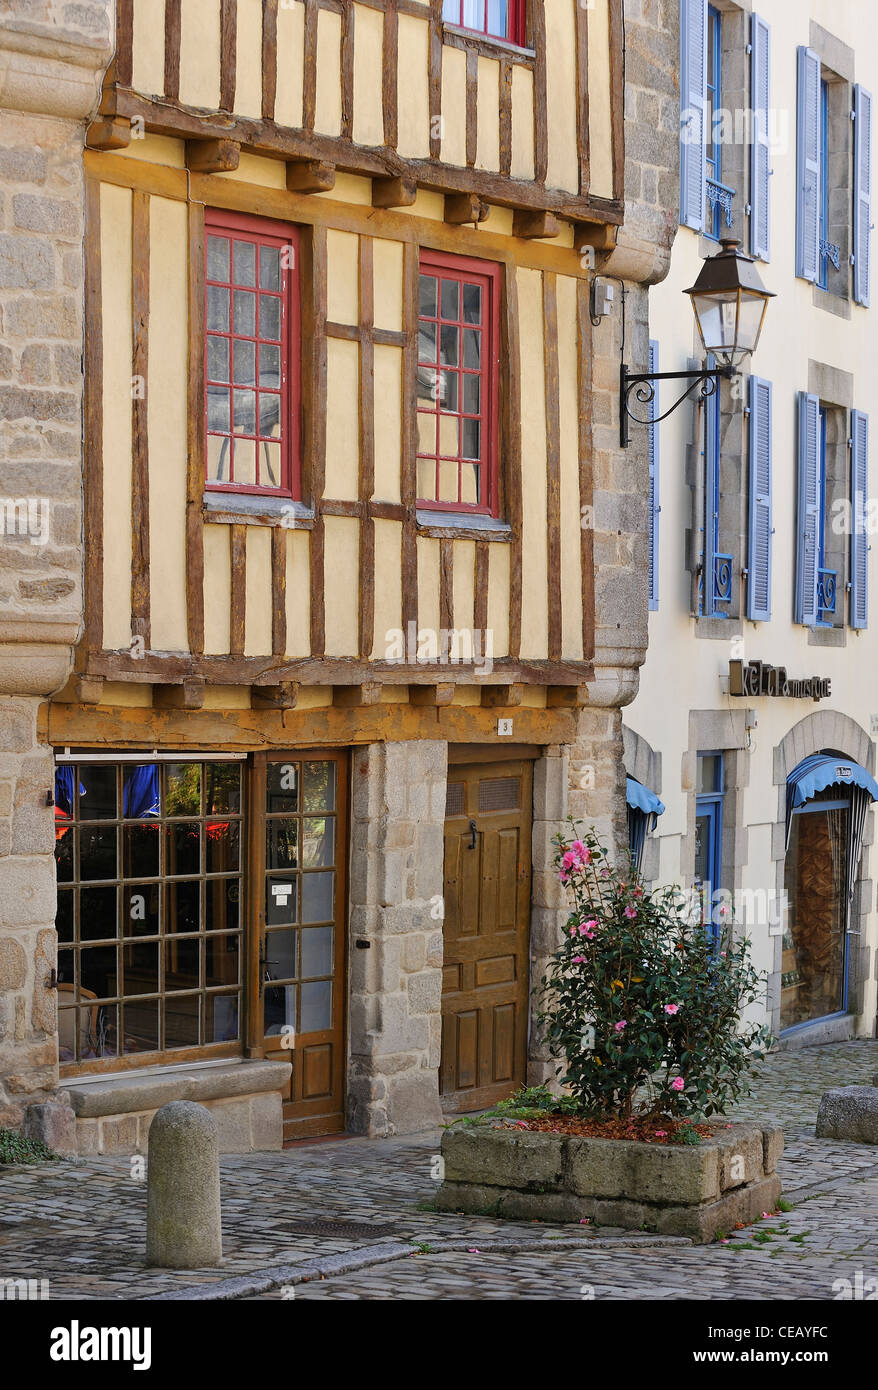 Street with half-timbered houses in the historic old town of Quimper, Finistère, Brittany, France - Stock Image